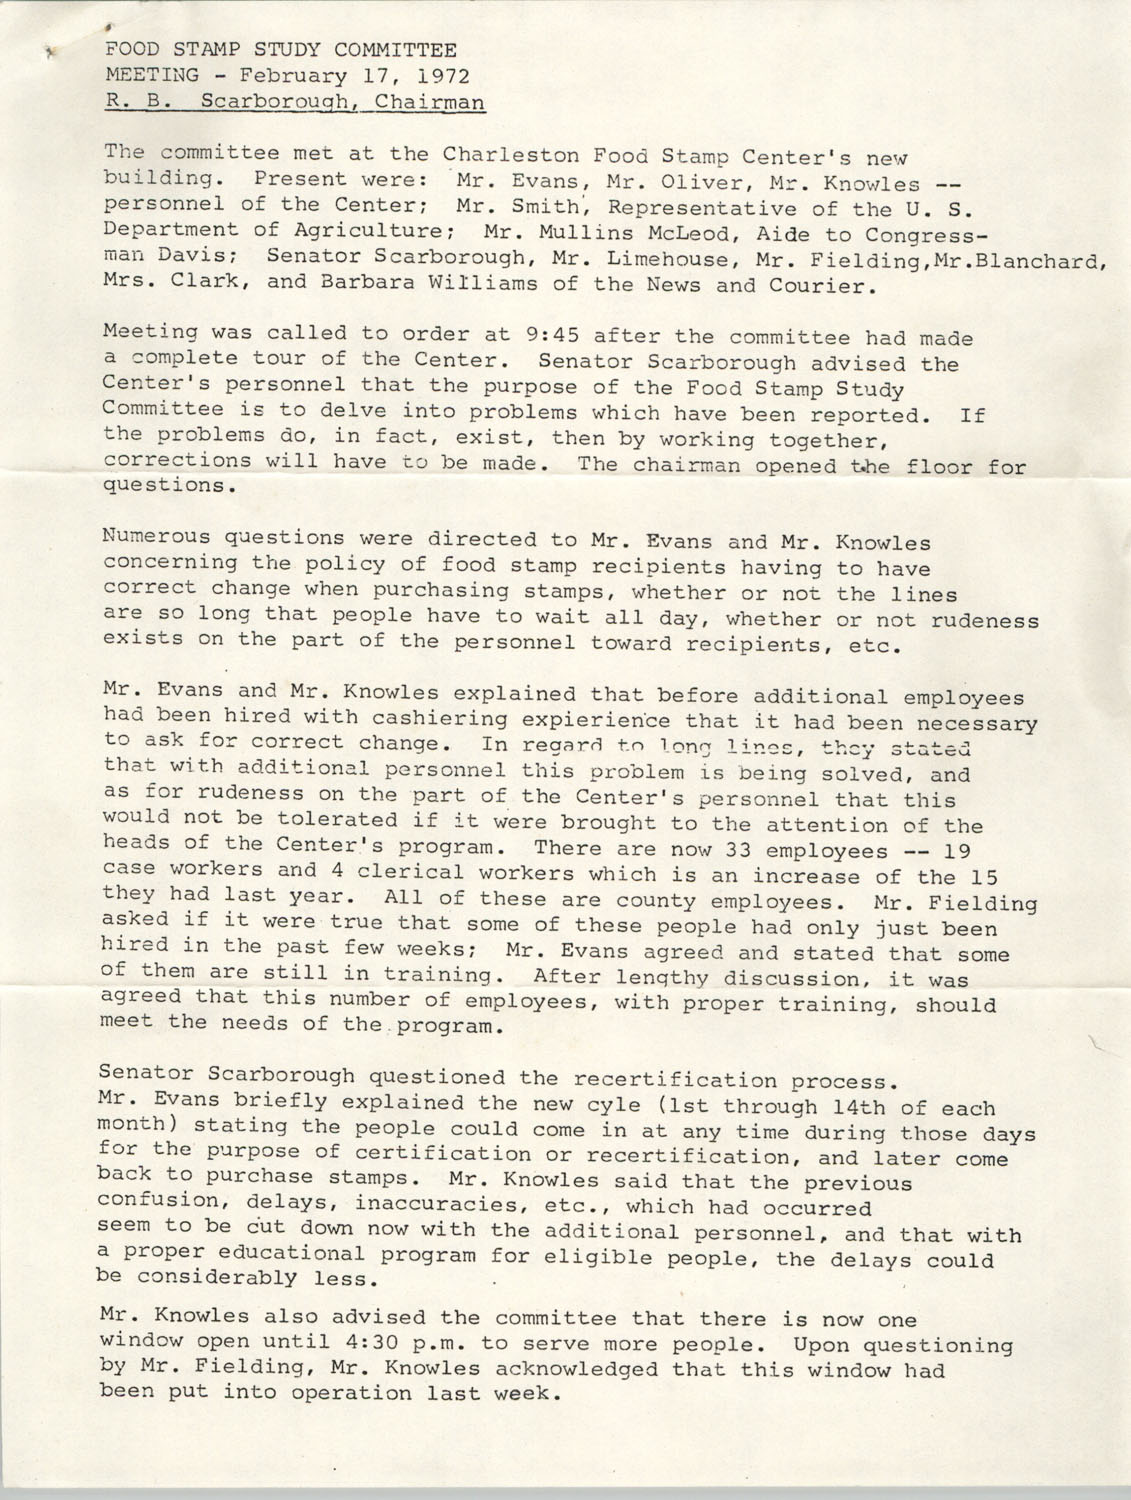 Minutes, Food Stamp Study Committee, February 17, 1972